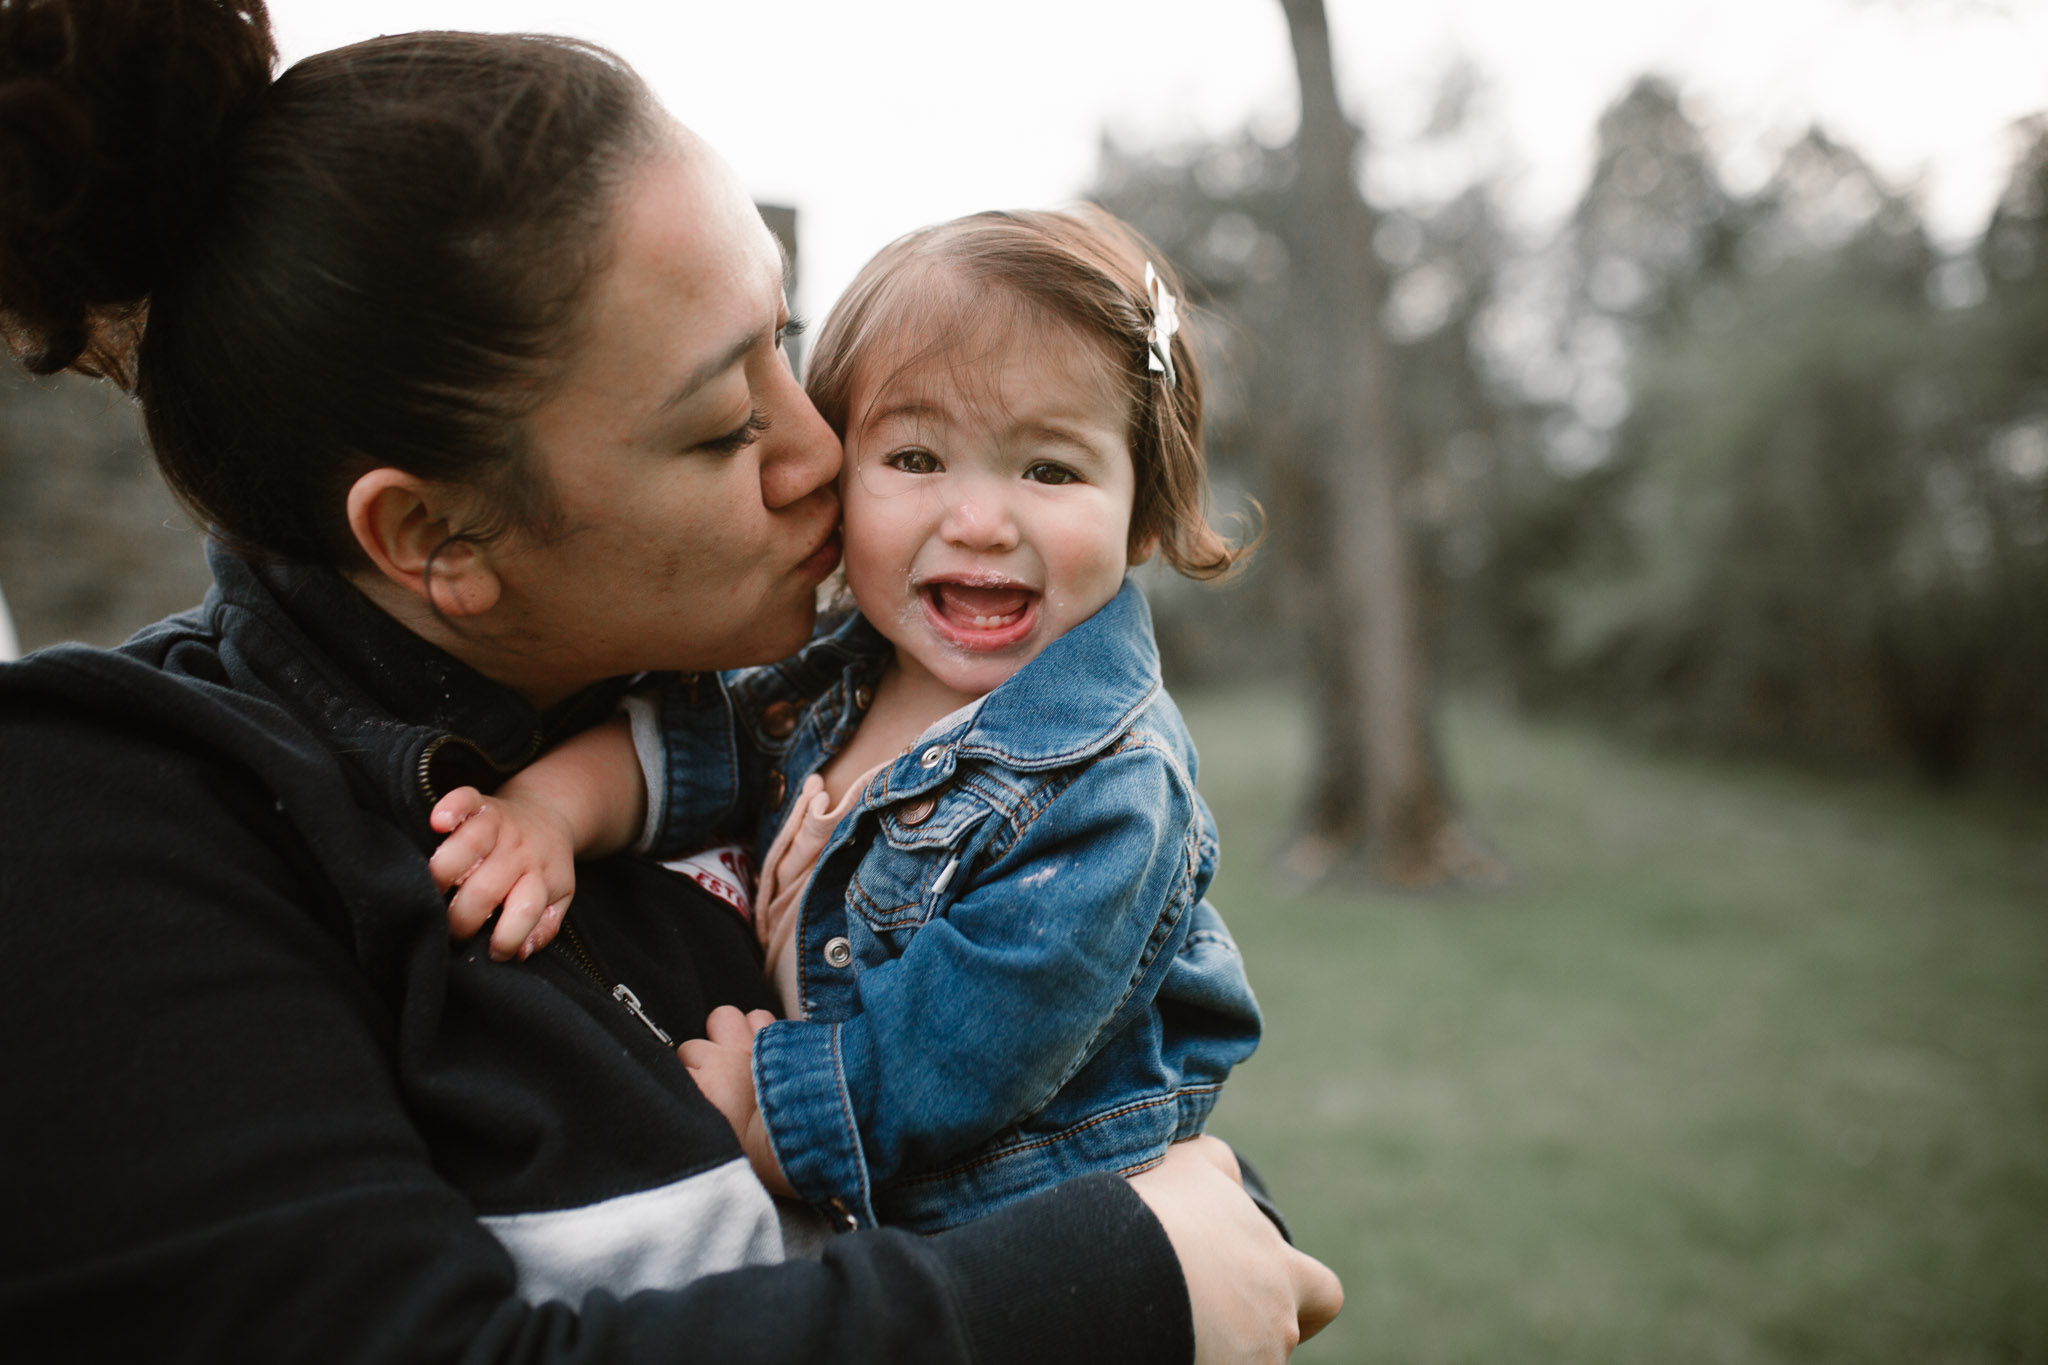 One year old girl makes a funny face as her mom gives her a kiss on the cheek at Red Rock Wilderness Overlook in Leesburg, VA.